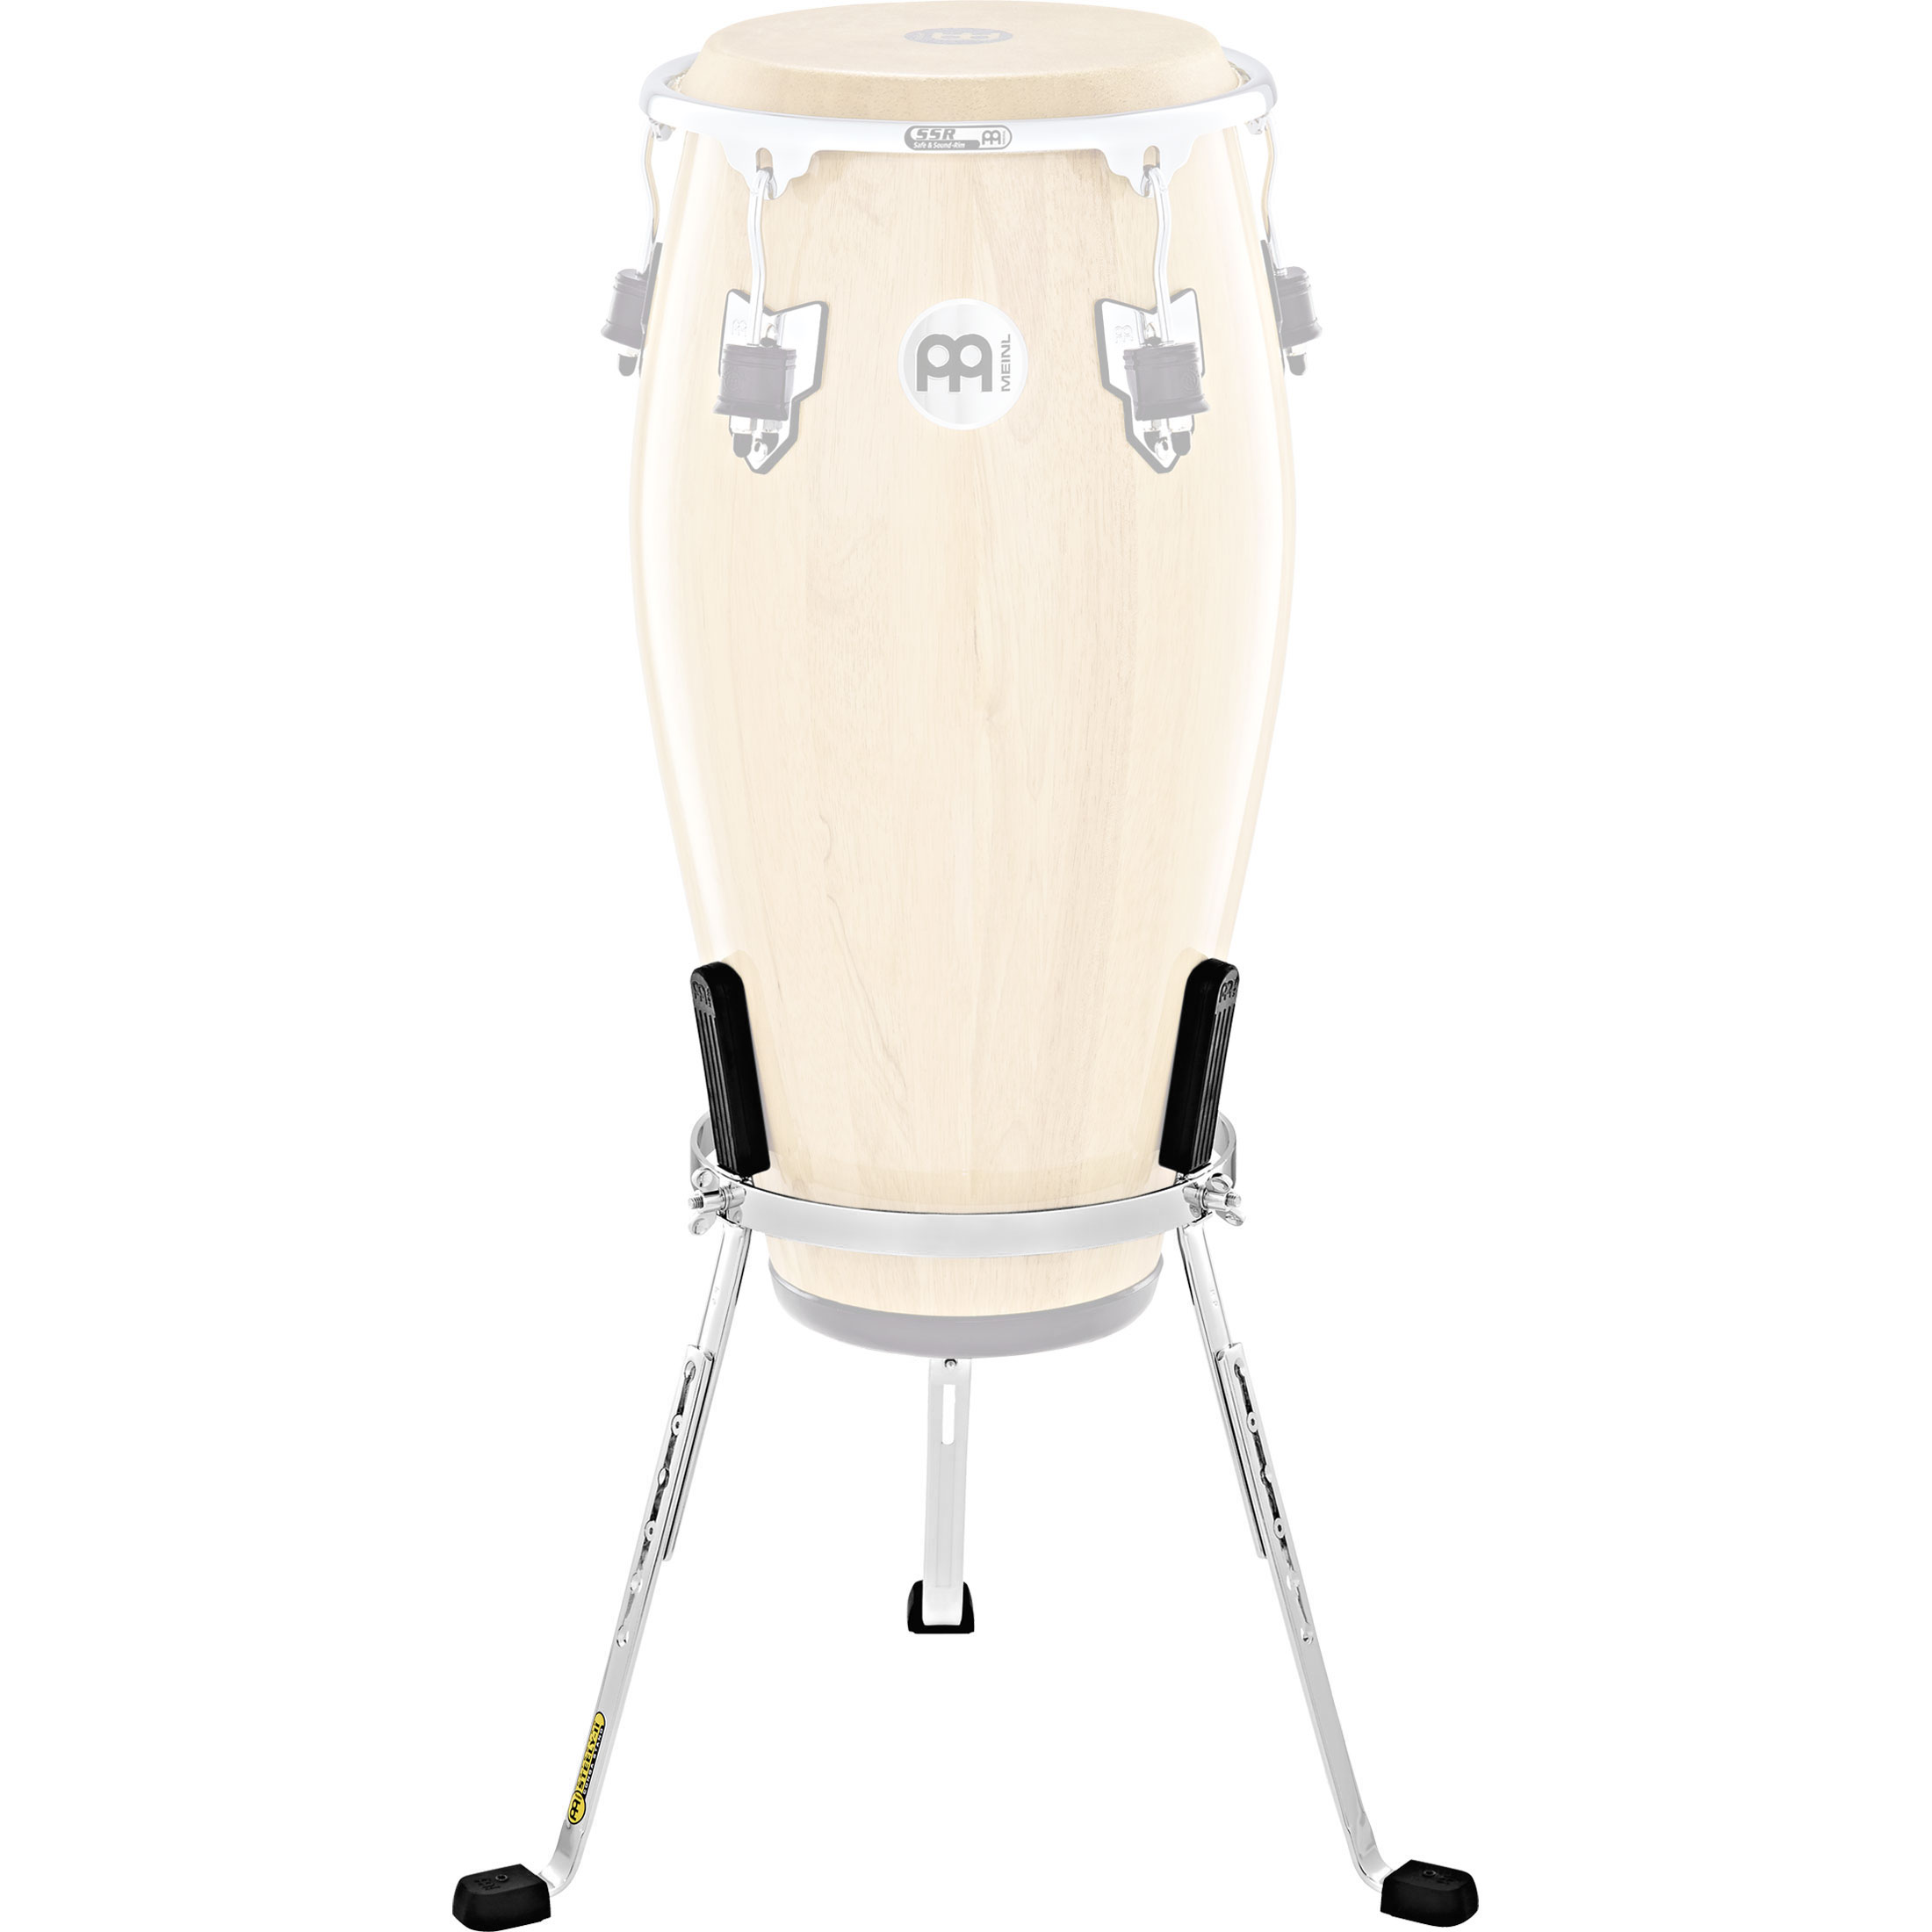 "Meinl 12.5"" Marathon Exclusive Steely II Tumba Conga Stand in Chrome"